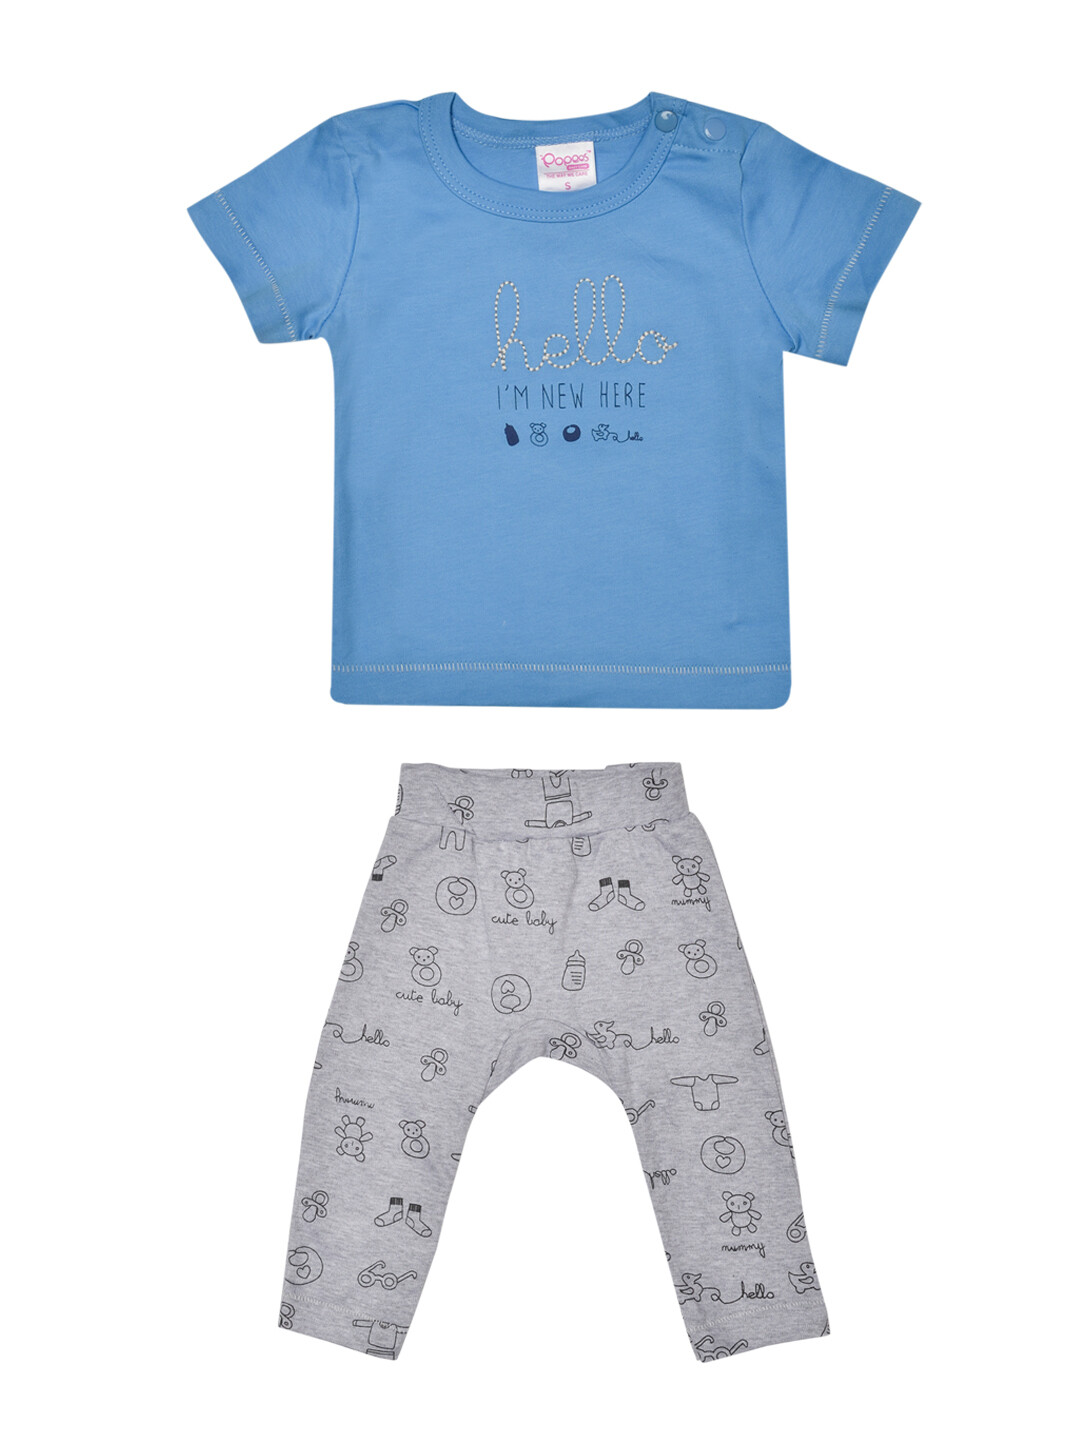 Qubee Dark Blue Half Sleeves Round Neck T-Shirt with Printed Lounge Pant